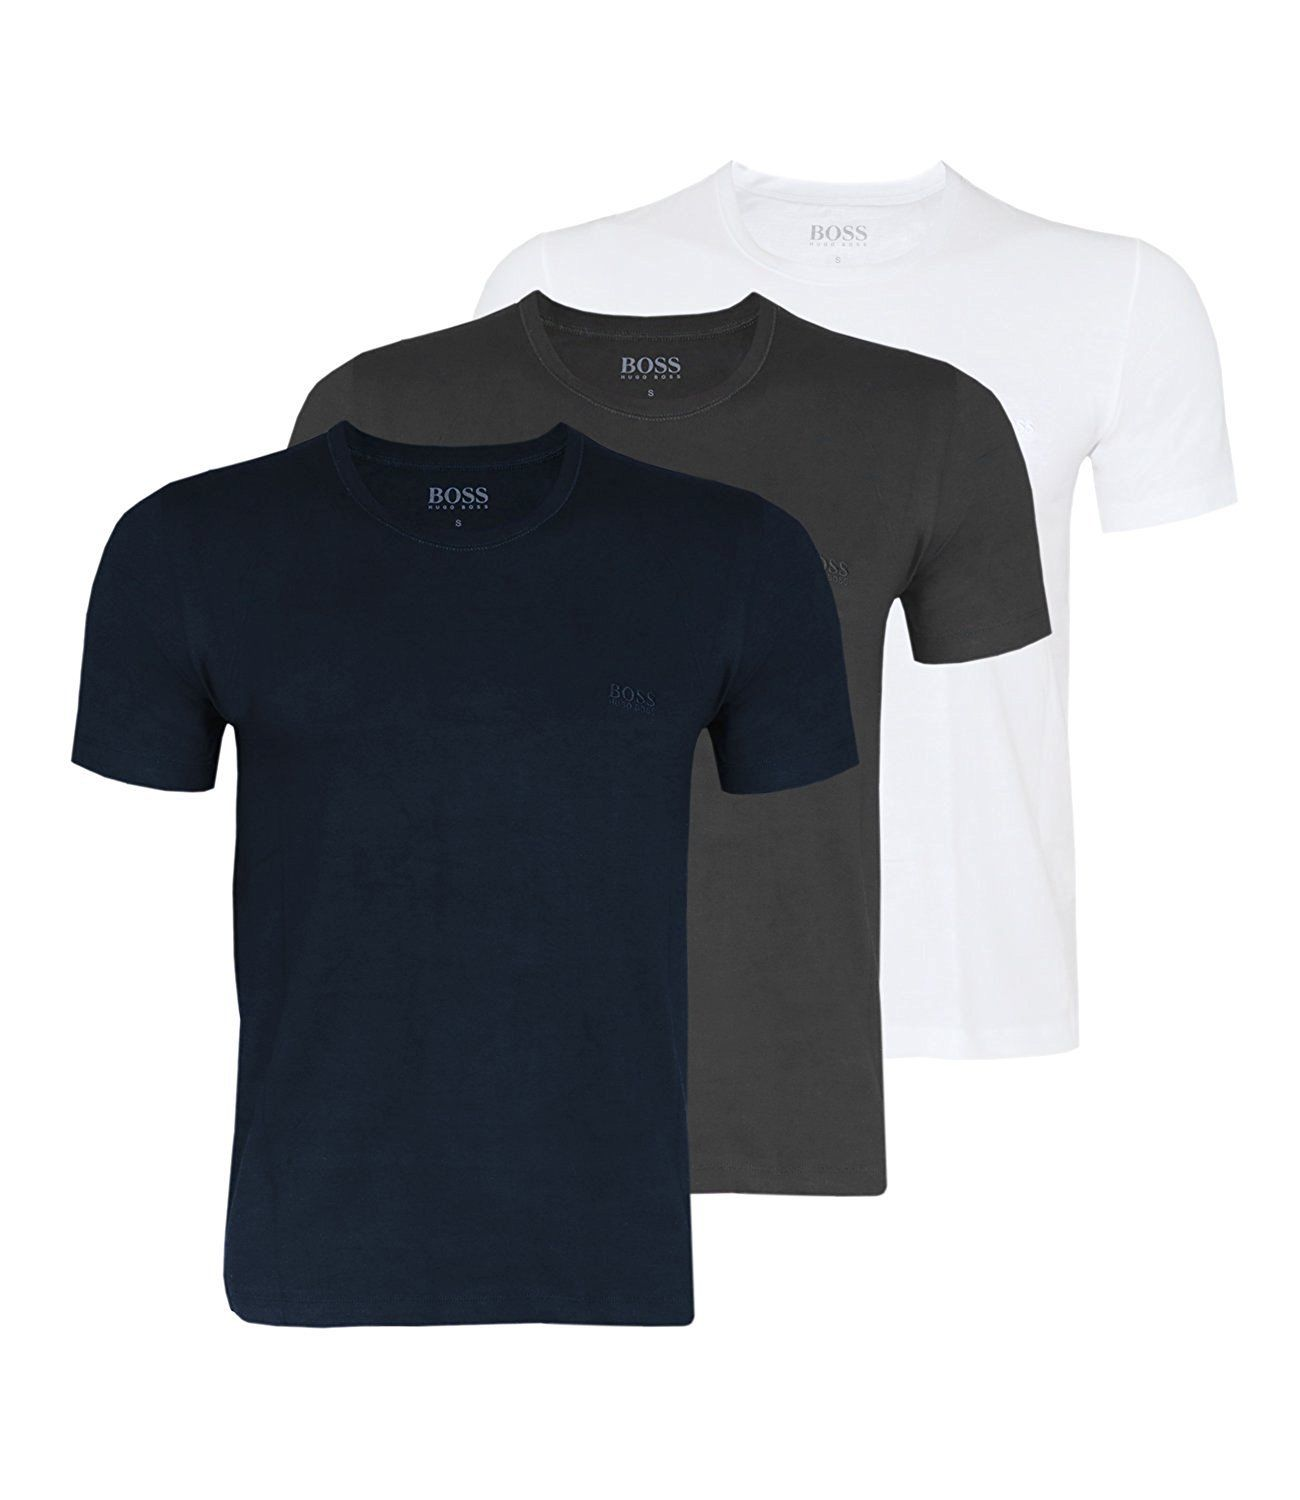 551d57f80 Details about Hugo Boss Men's Crew Neck T-Shirts Black Grey White Crew Neck 3  Pack Cotton